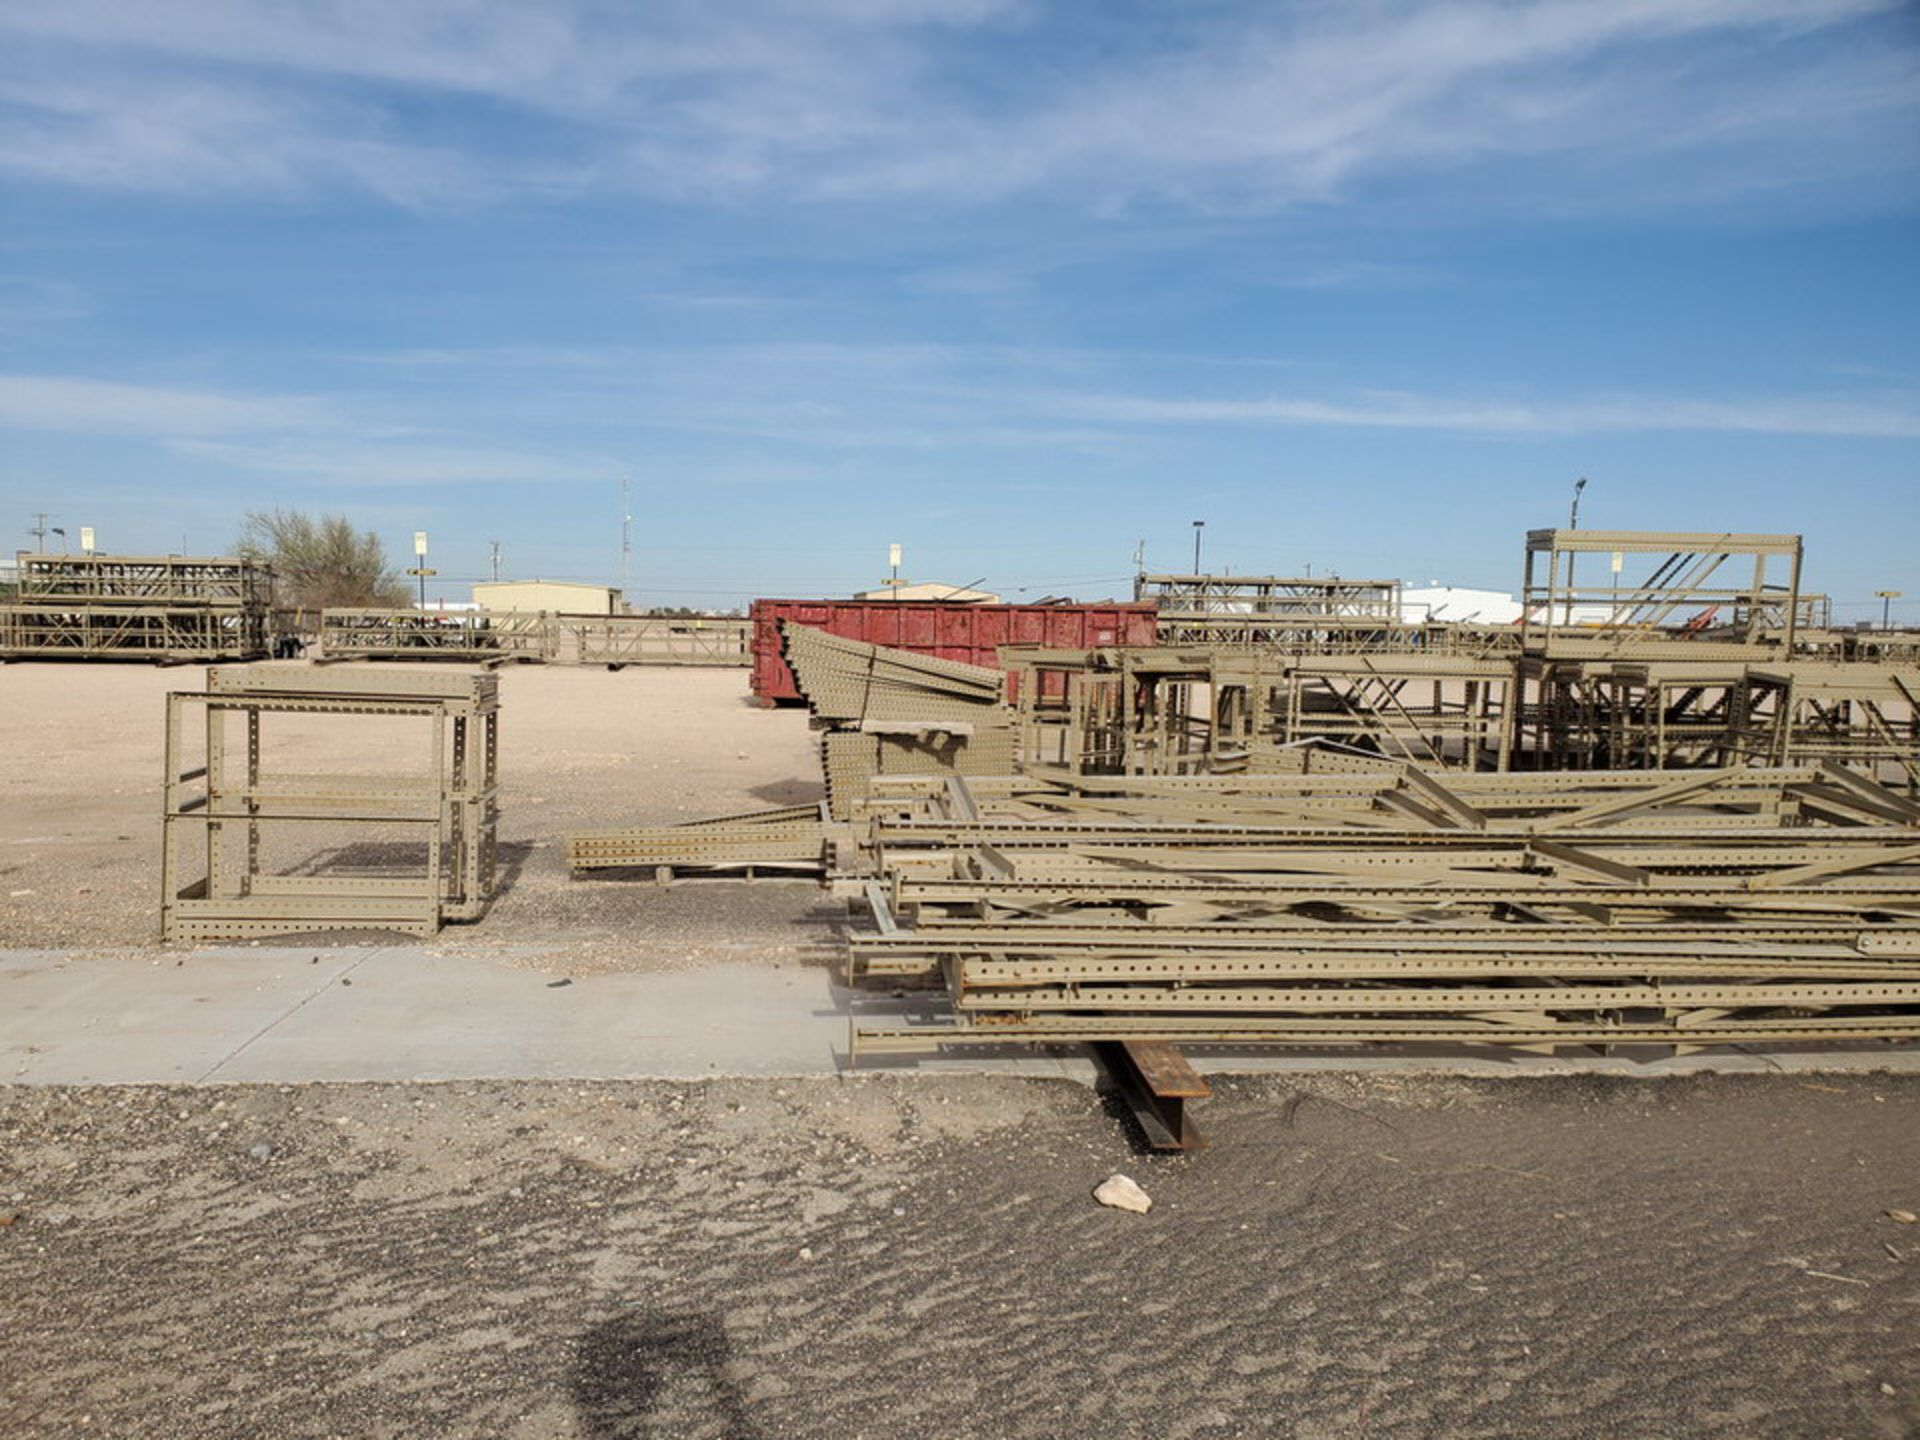 Disassembled Catwalk Sections - Image 10 of 20